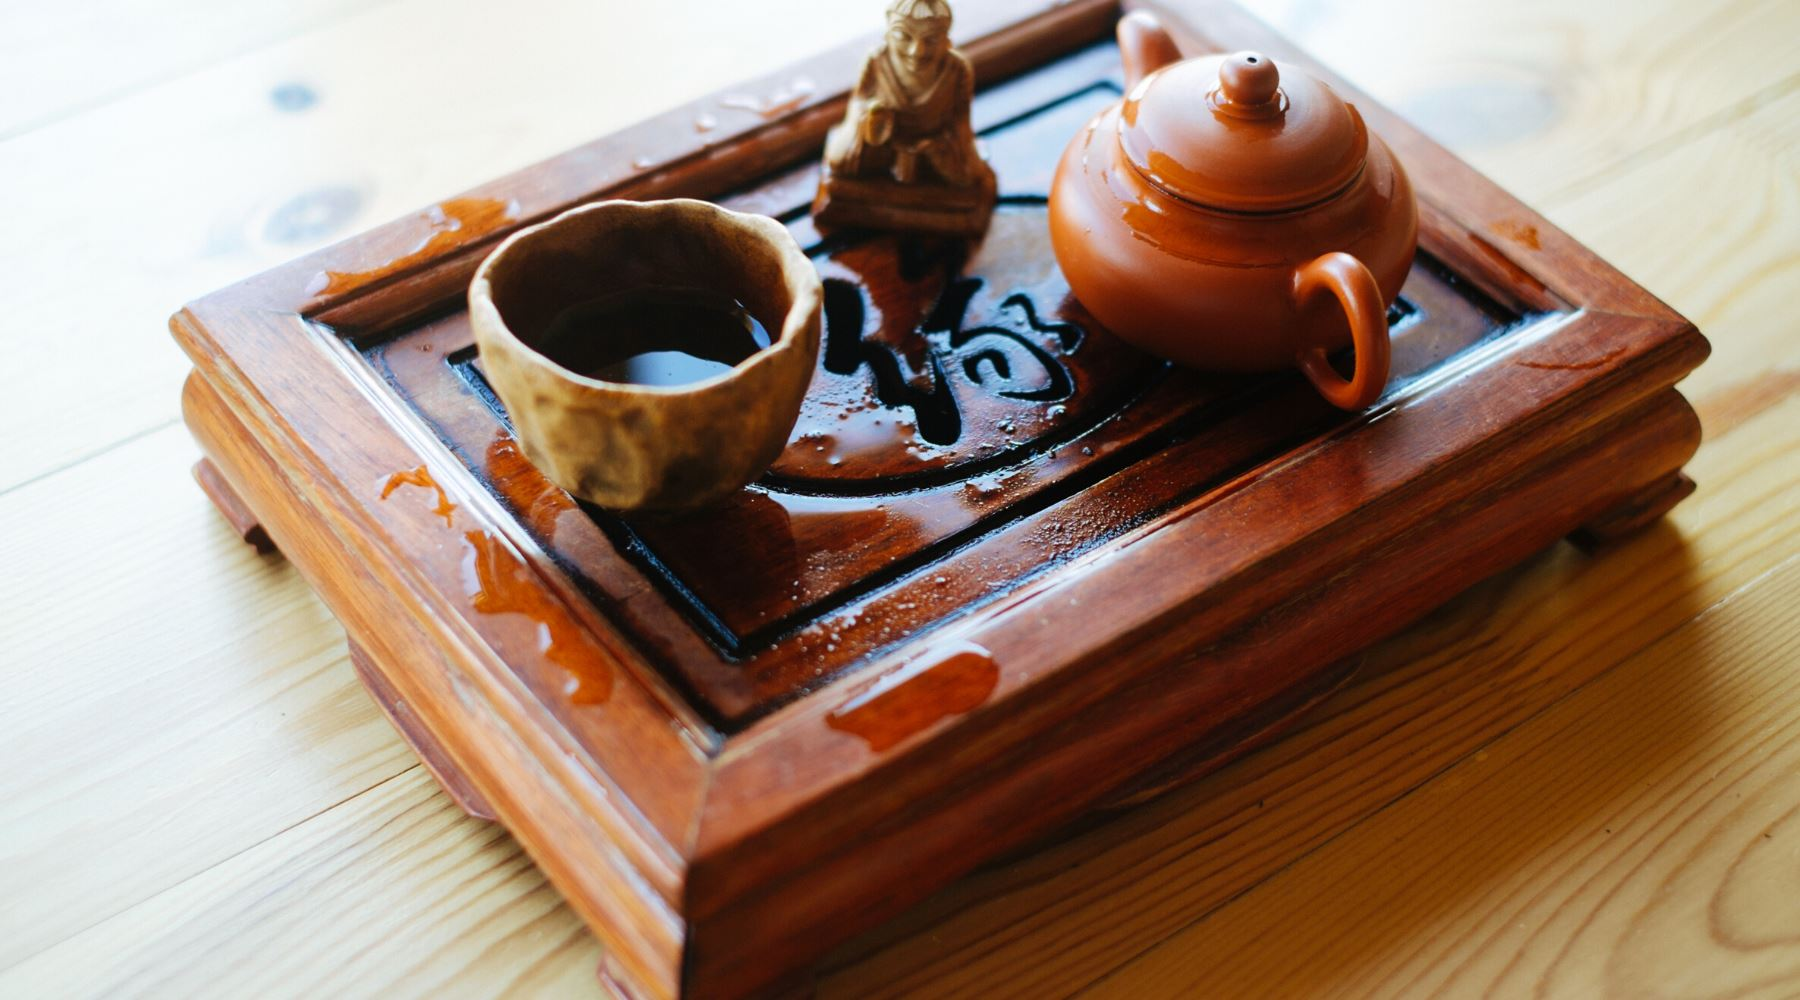 Why the Chinese Rinse Their Tea? Should You Rinse Tea?